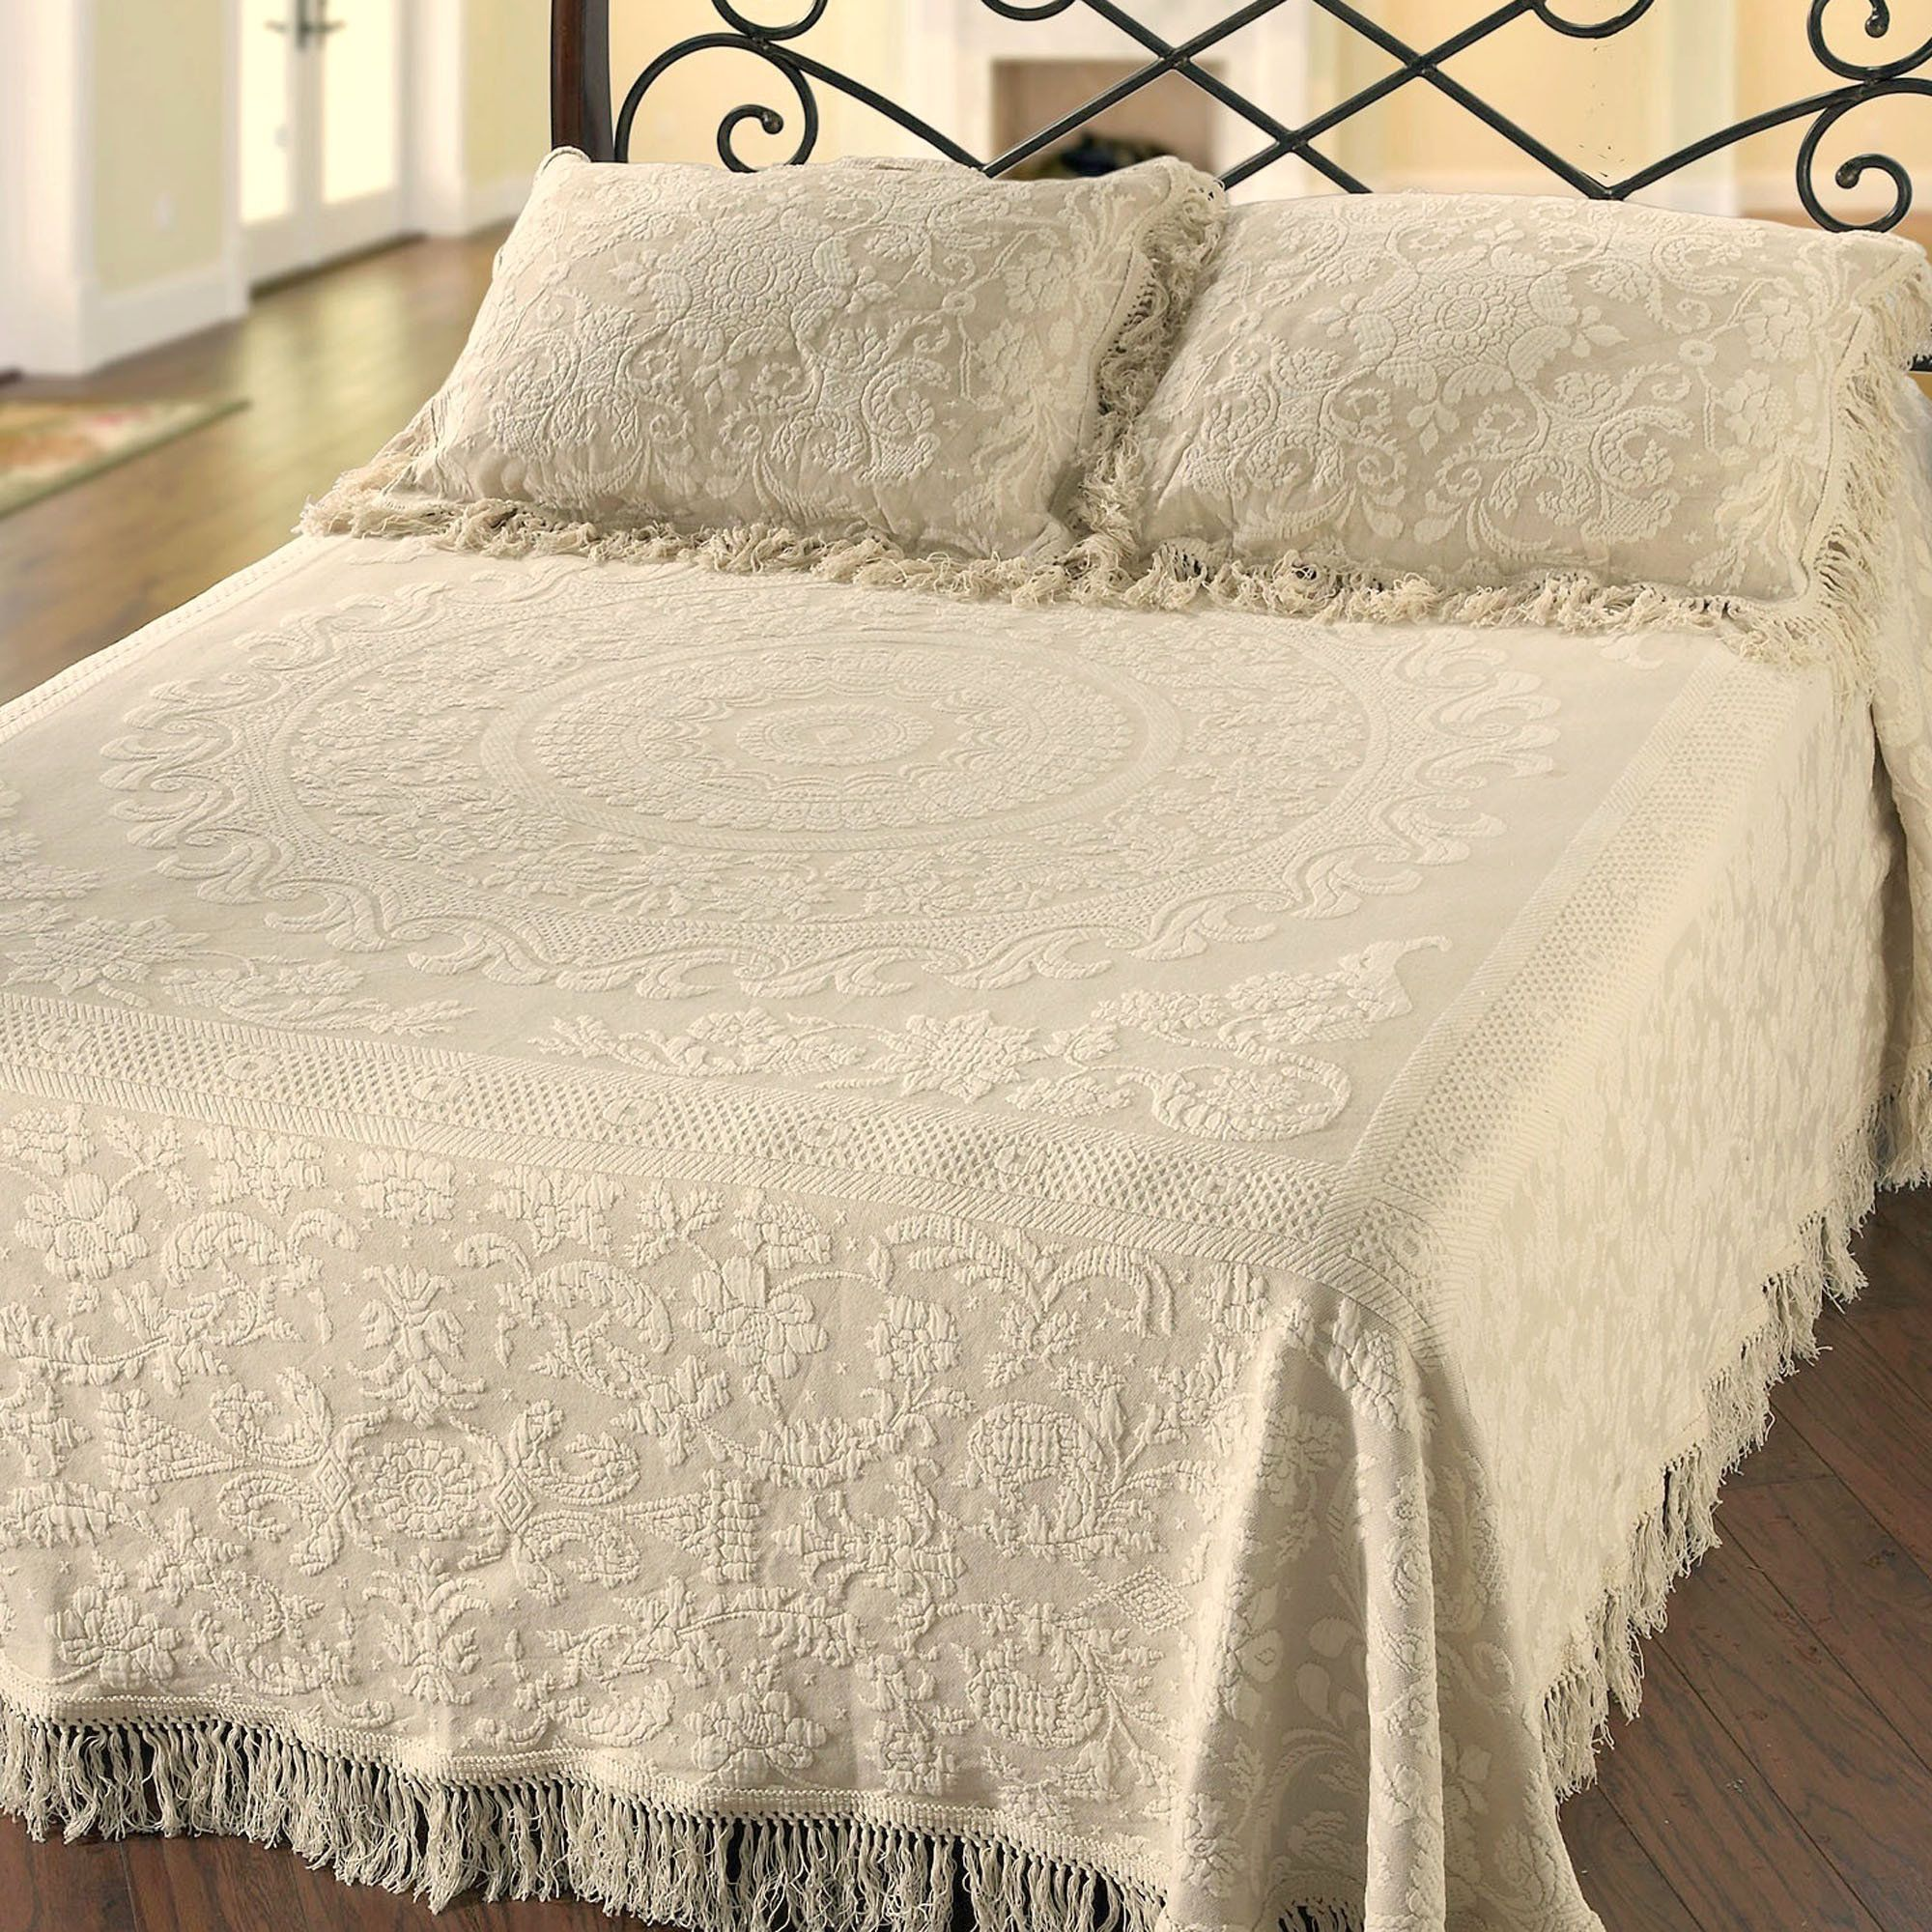 comforter jessica cottage stone wondrous mg bedding wayfair sakura in set n reviews simpson